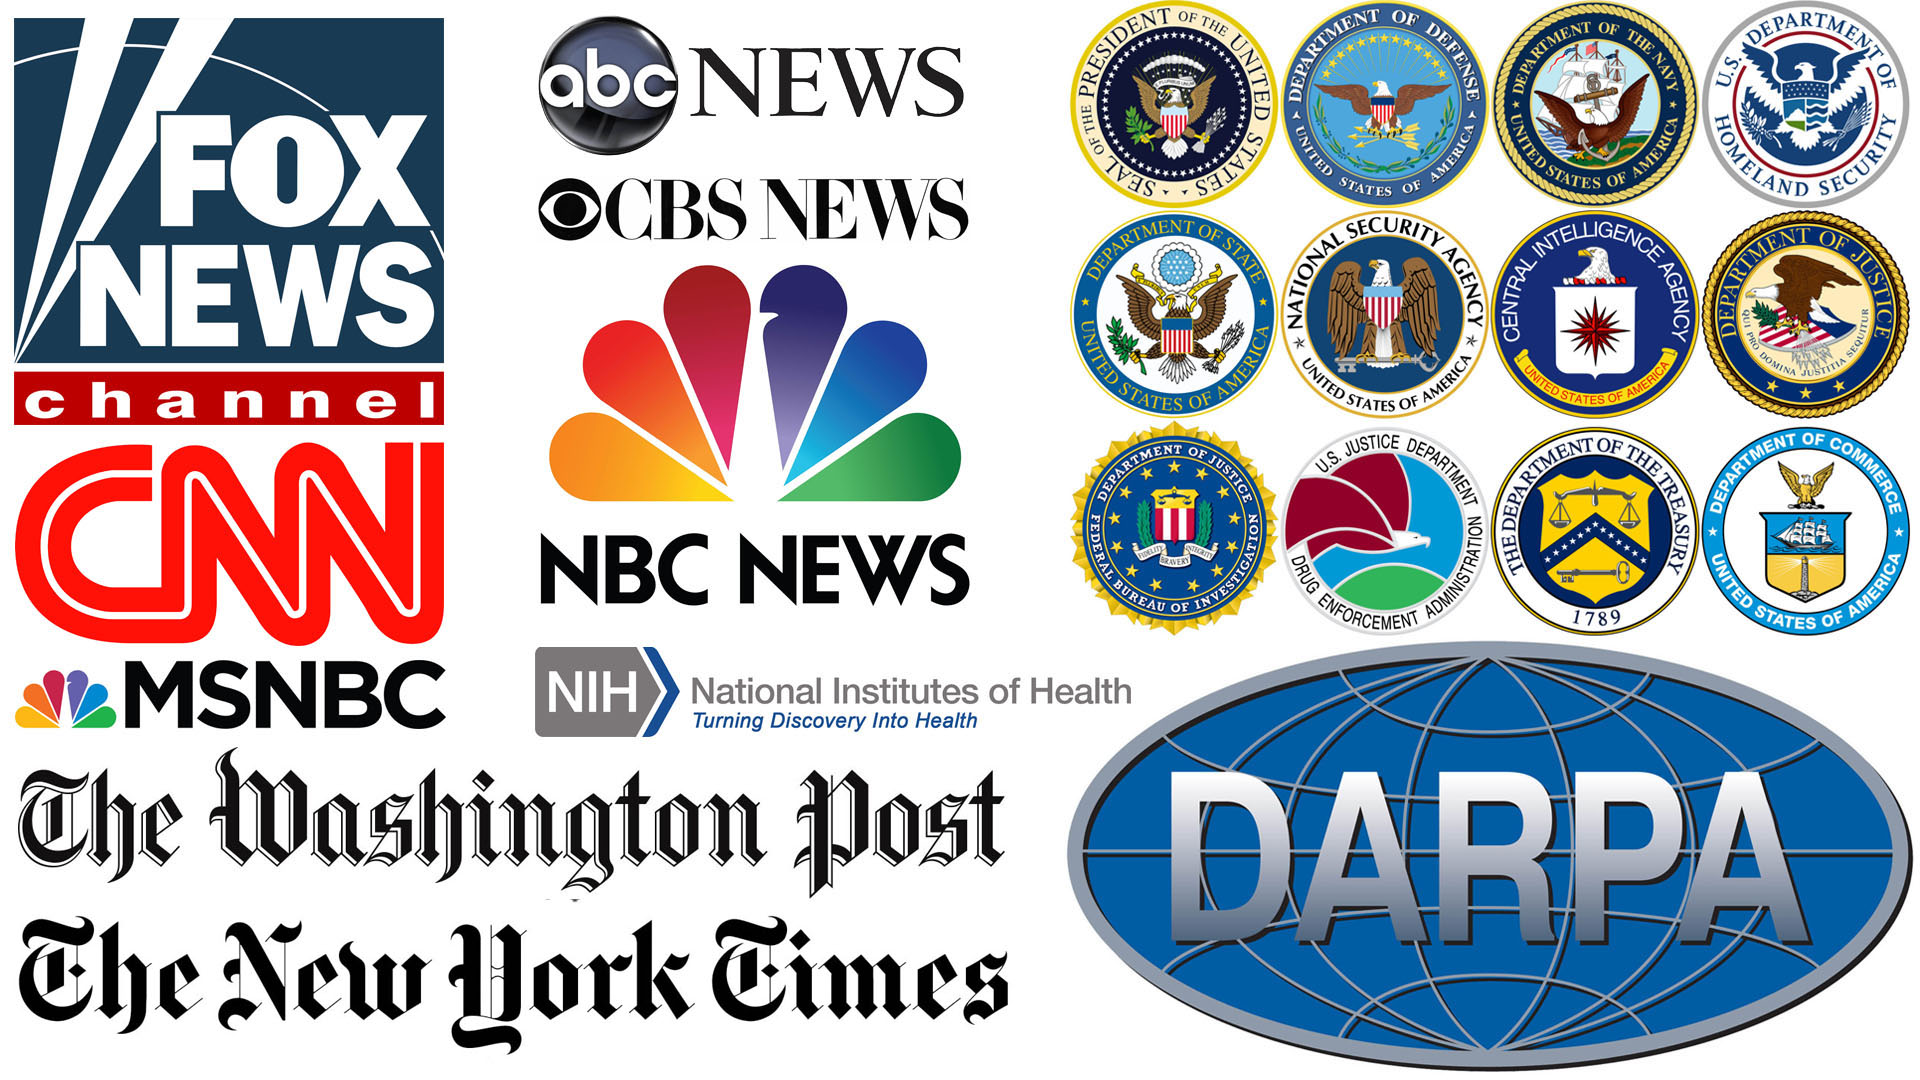 Many American Mass Media News and U.S. Government Logos